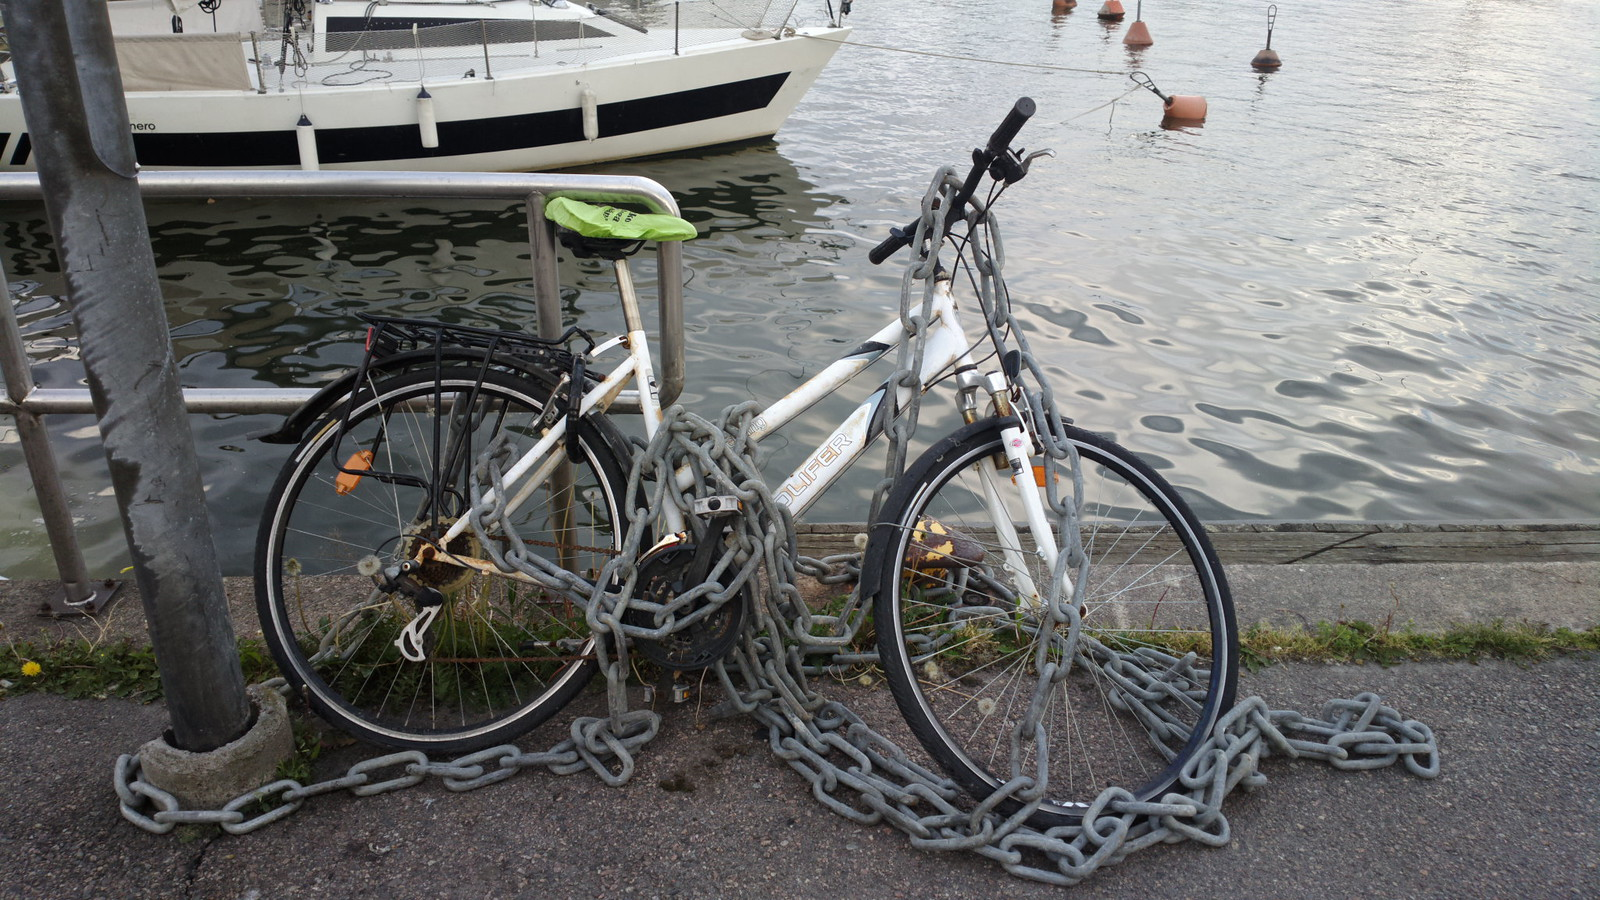 Always remember to chain up your bicycle.